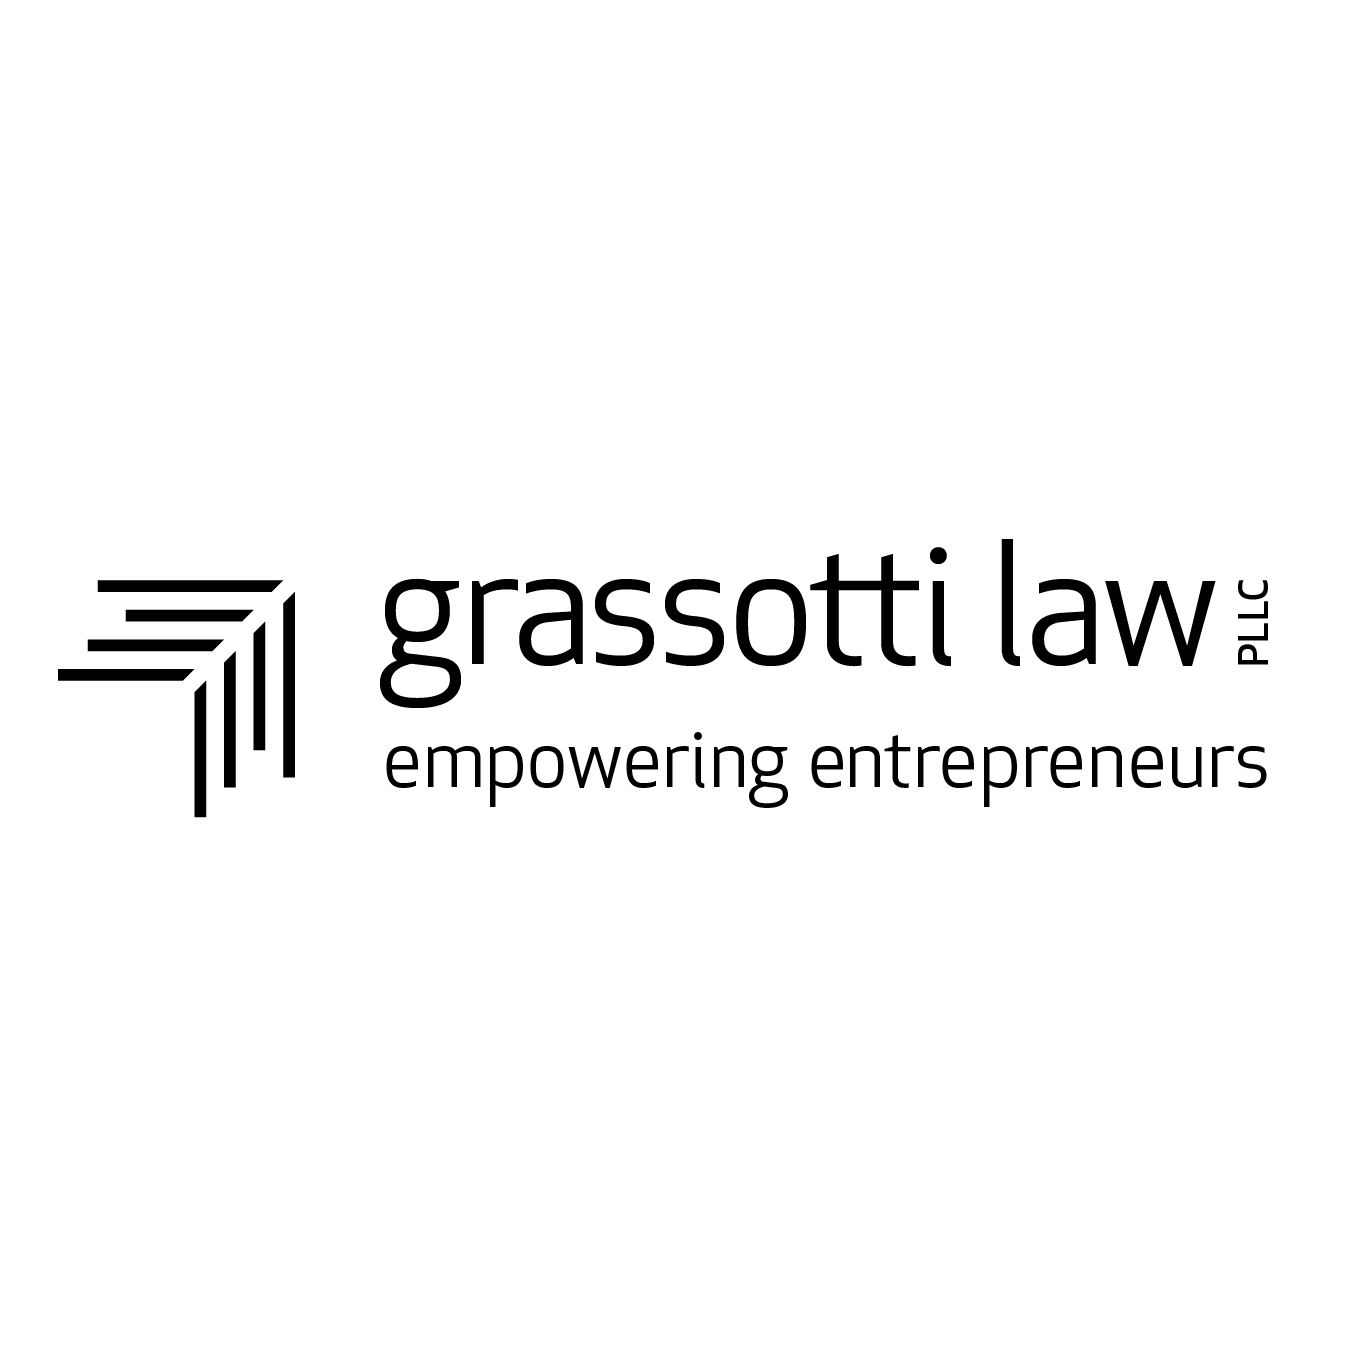 A New York City based law firm specializing in representing small businesses.